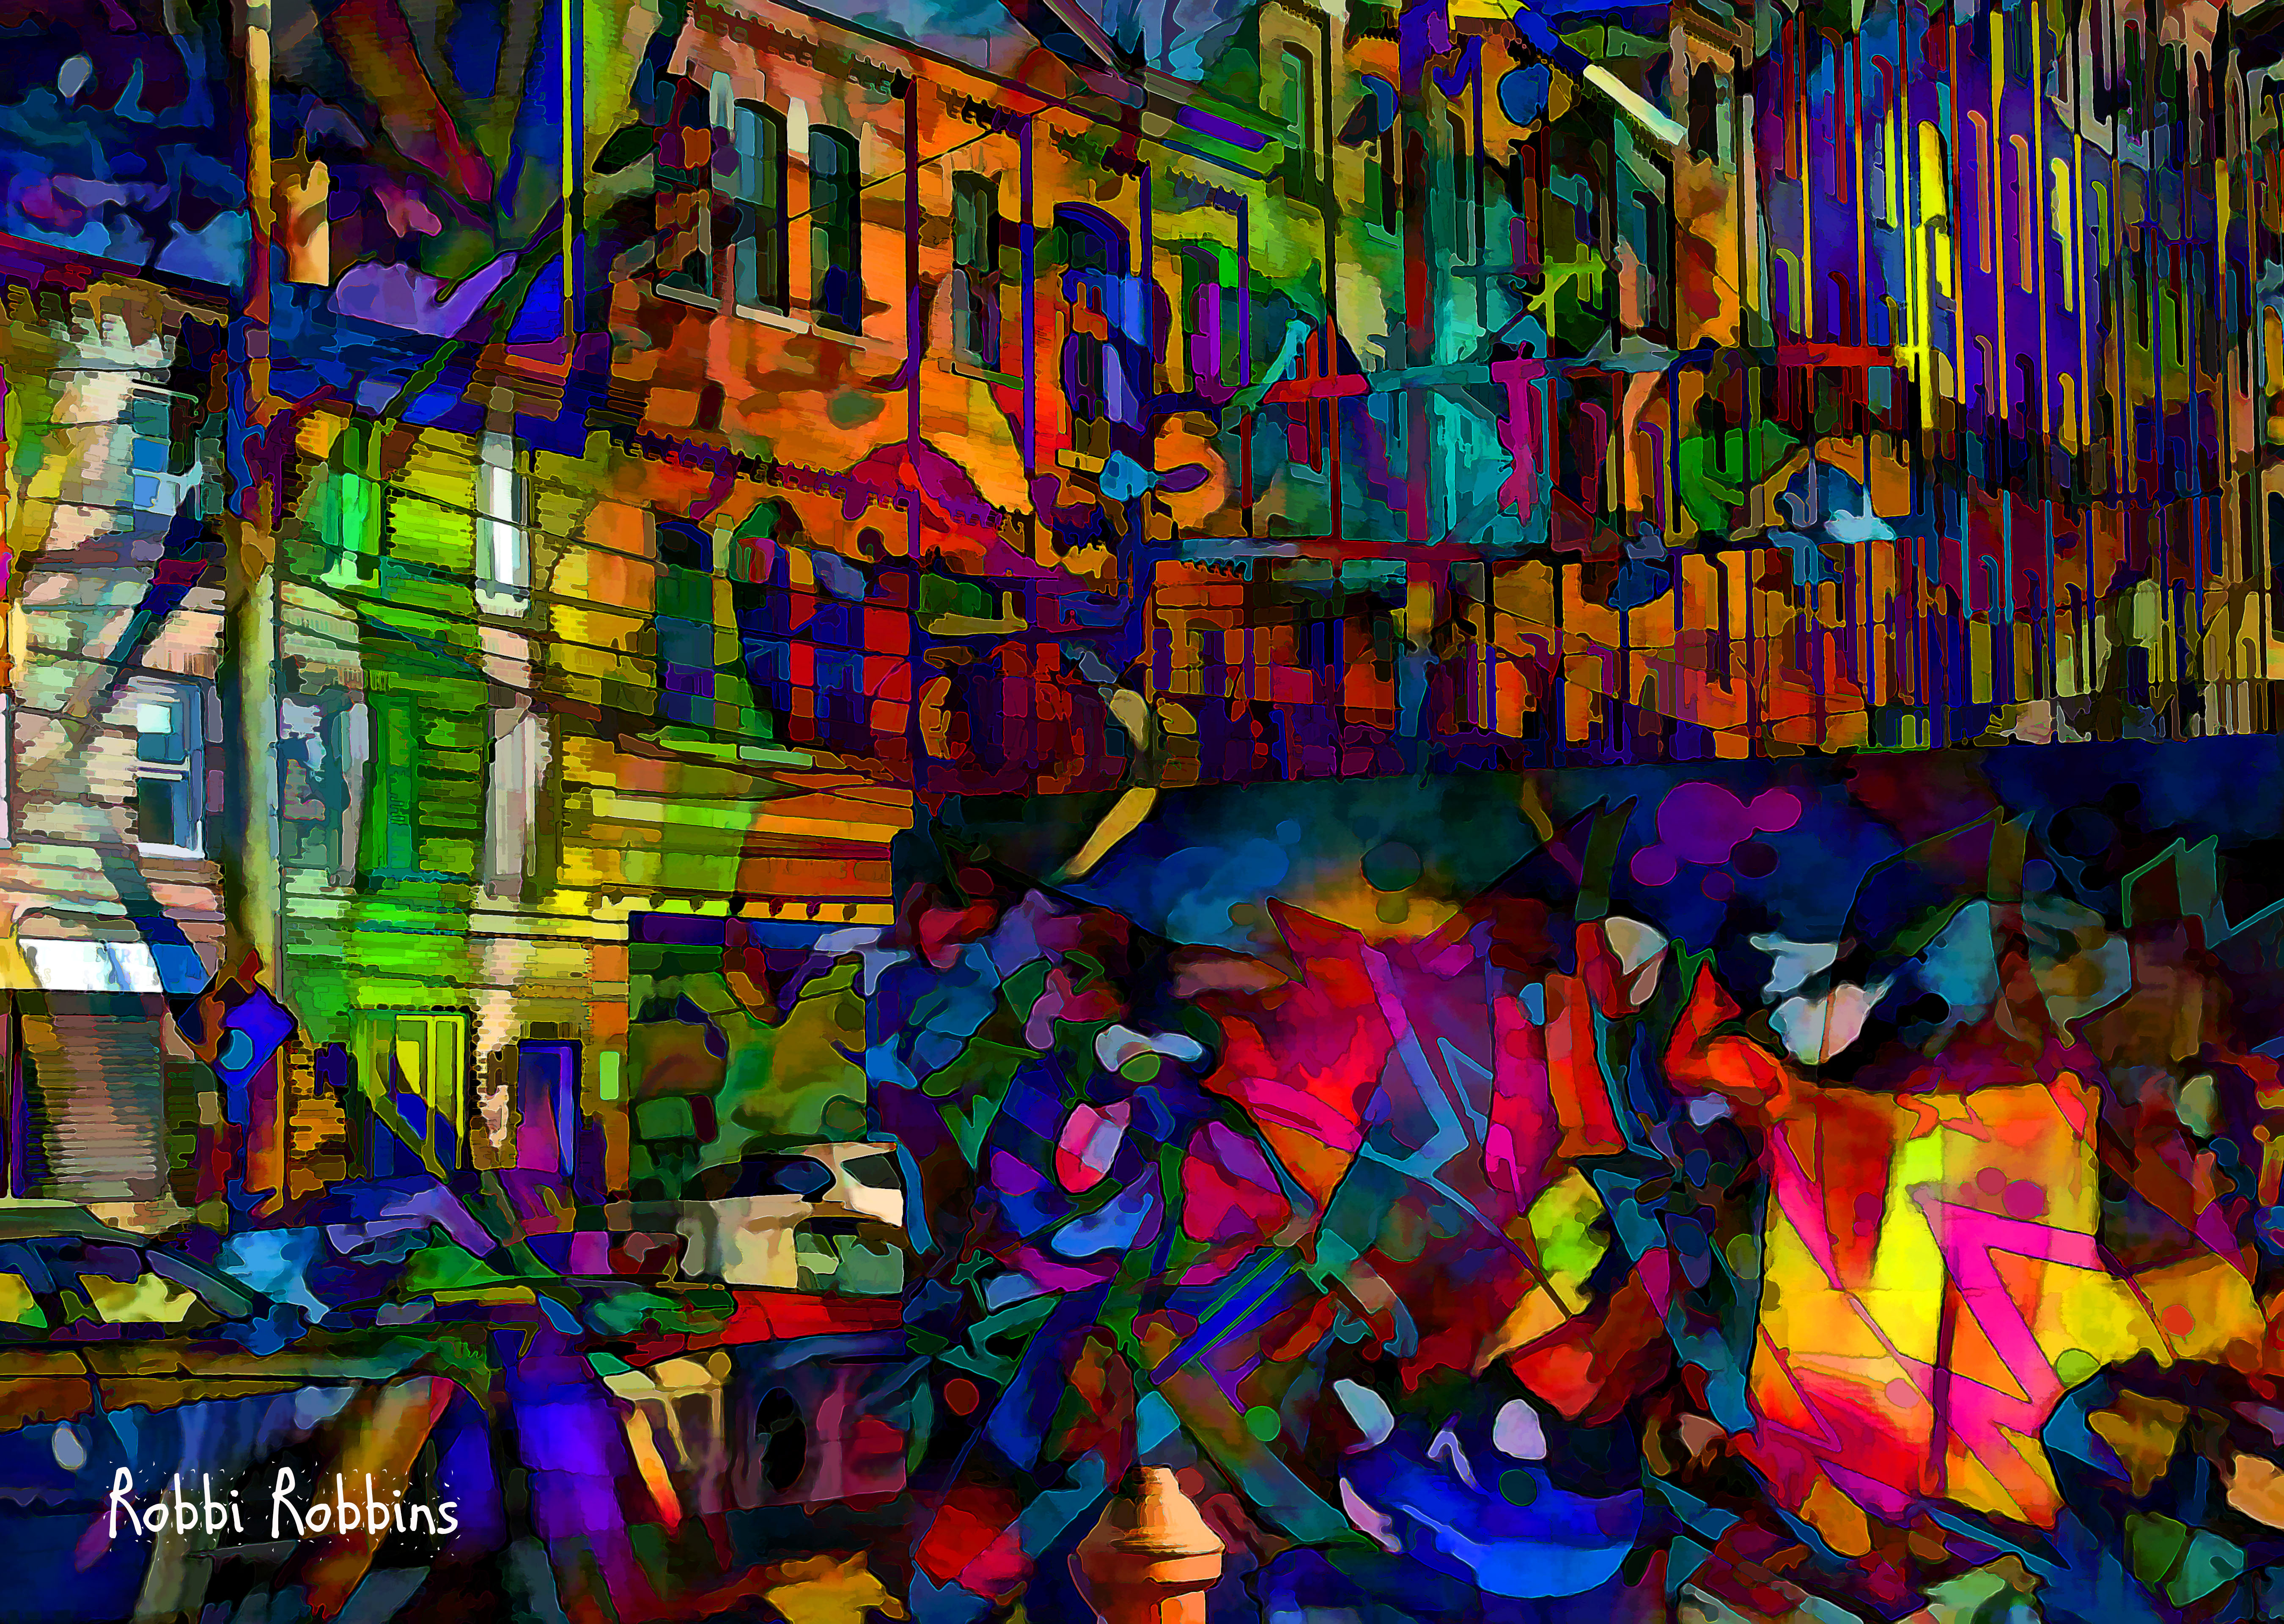 Wallpaper Perritos 3d Wallpaper Colorful Painting Photoshop Window City